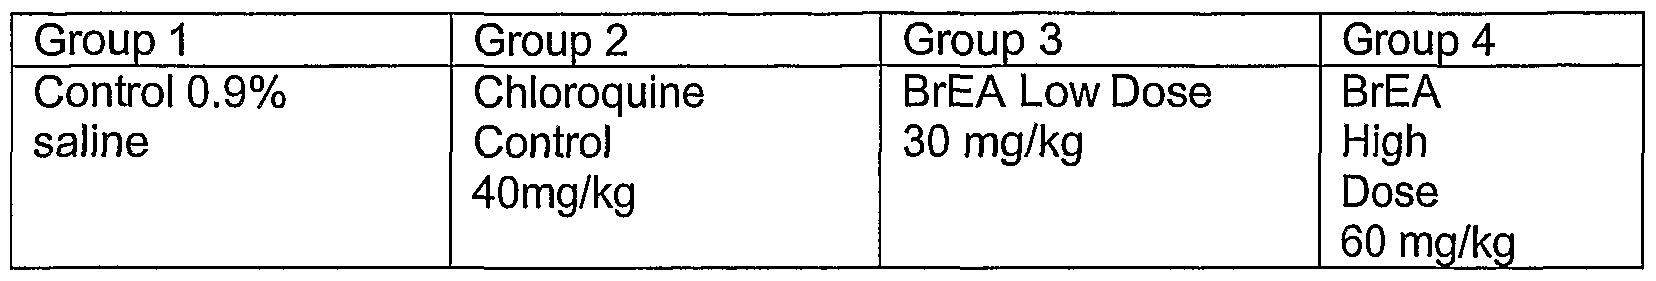 WO2002069977A1 - Use of certain steroids for treatment of